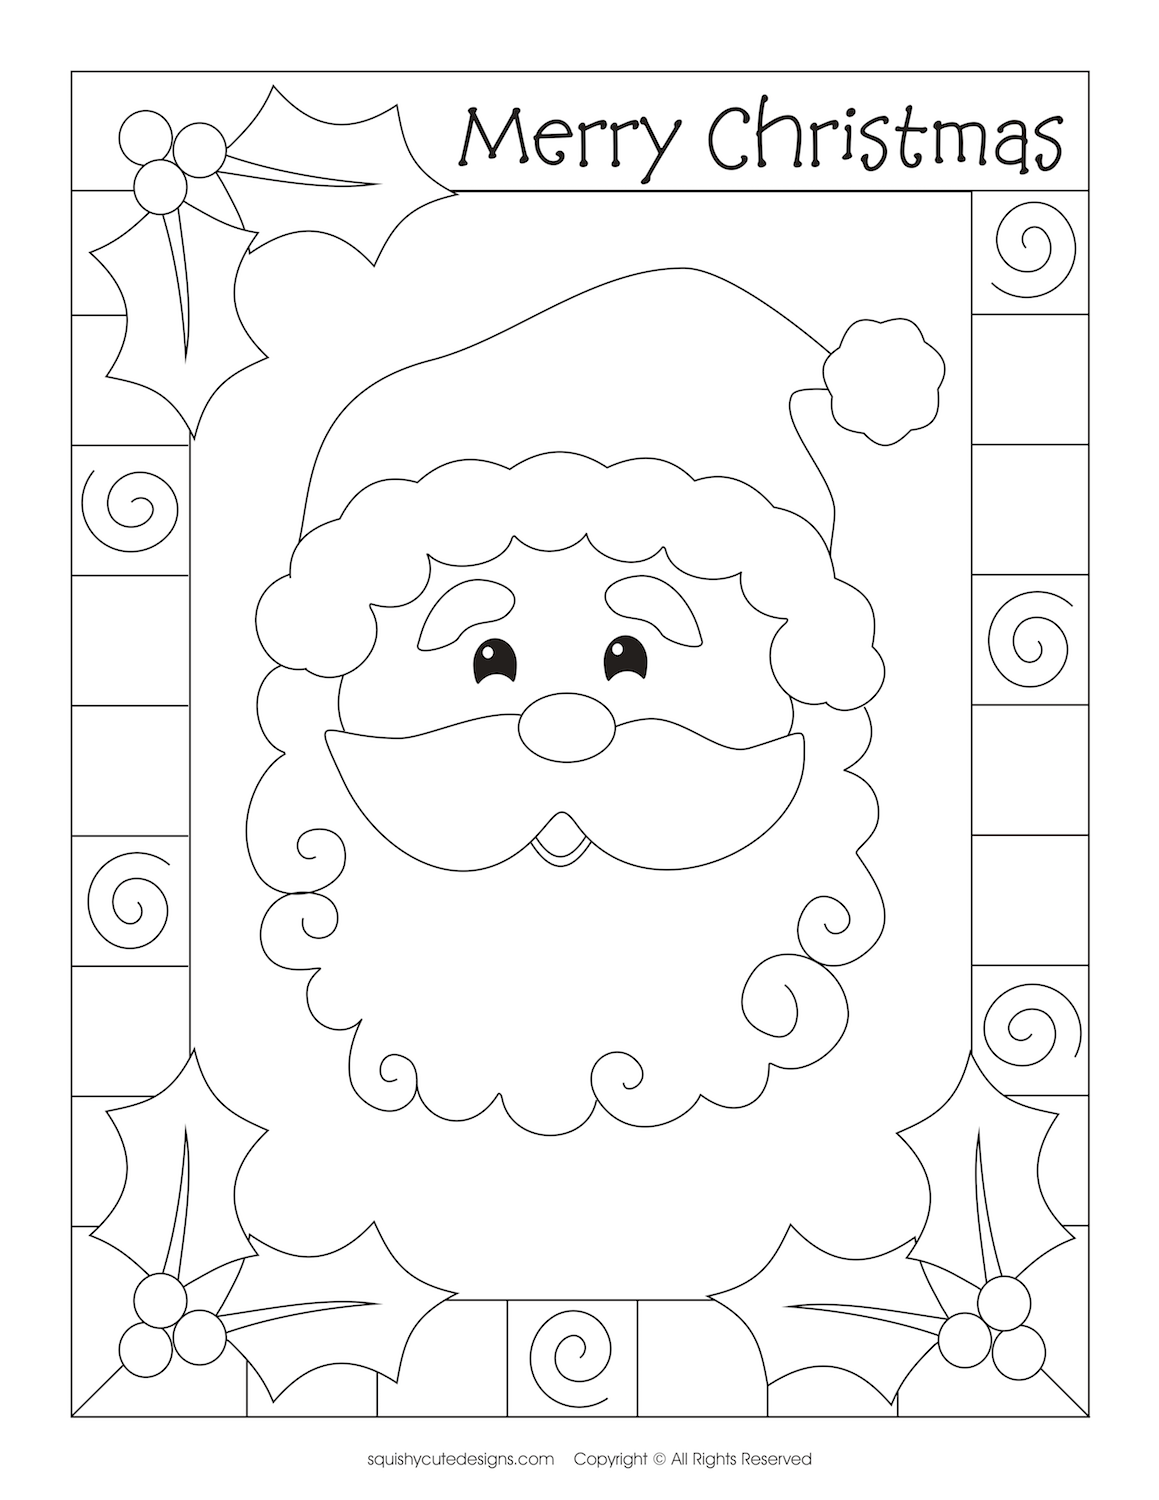 christmas coloring pagescelebrate christmas with coloring fun kids free printables including disney santa reindeer snowman christmas tree elf